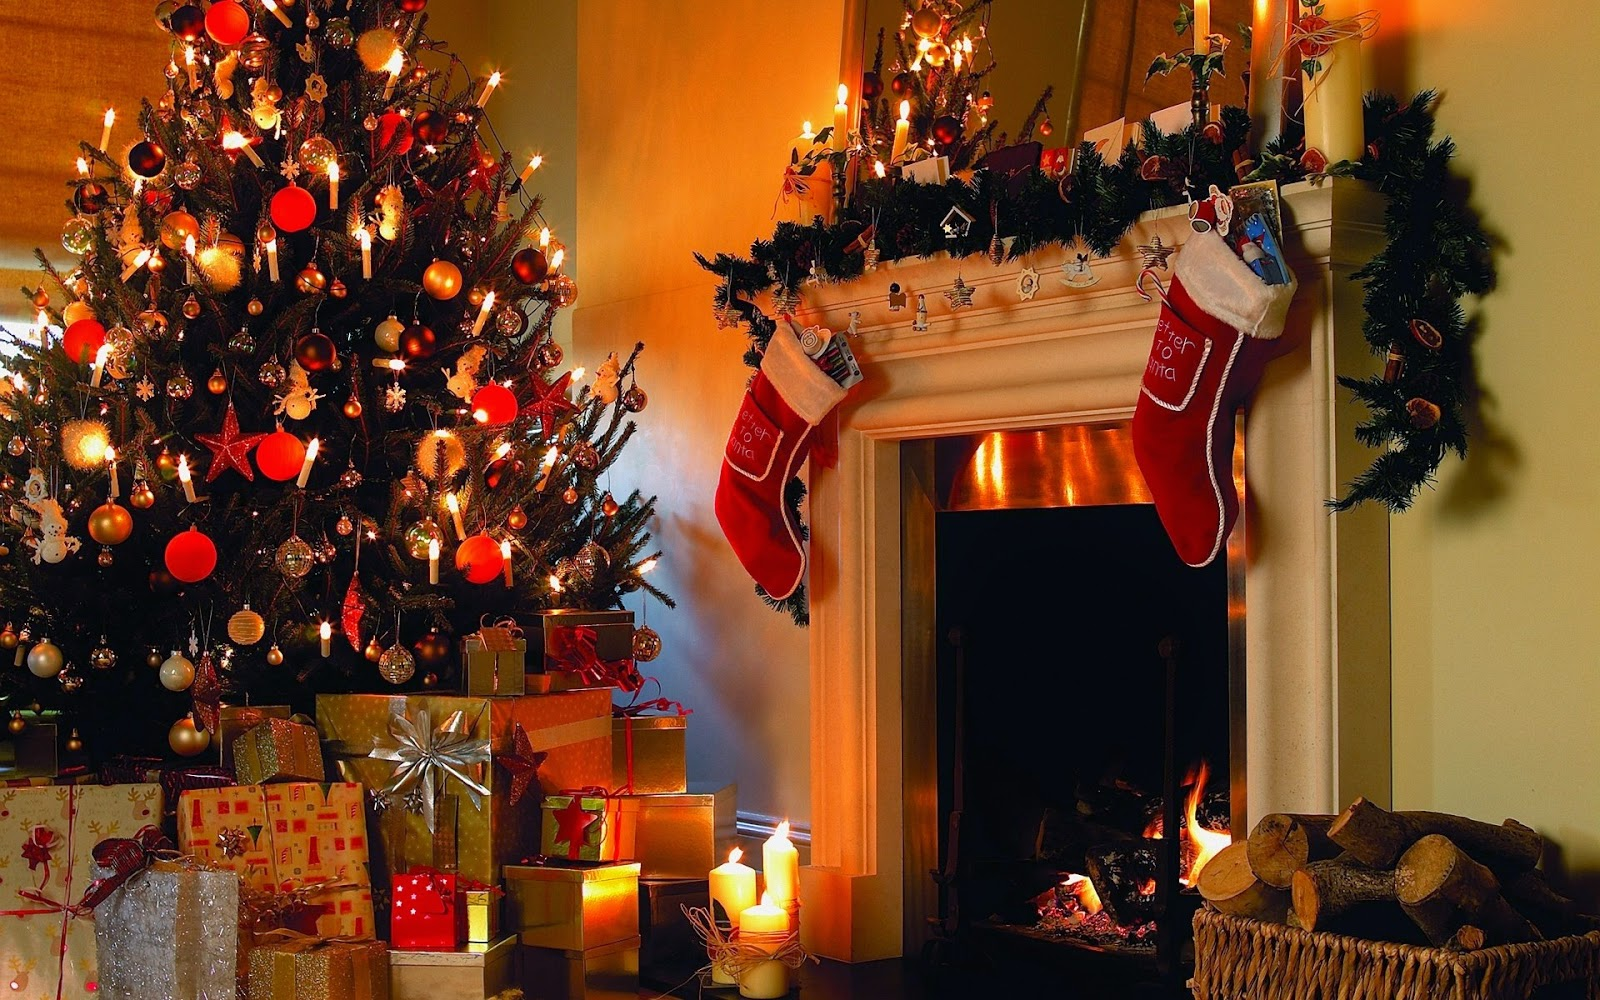 Christmas-fireplace-theme-template-decorating-idea-with-socks-tree-gift-box-image.jpg